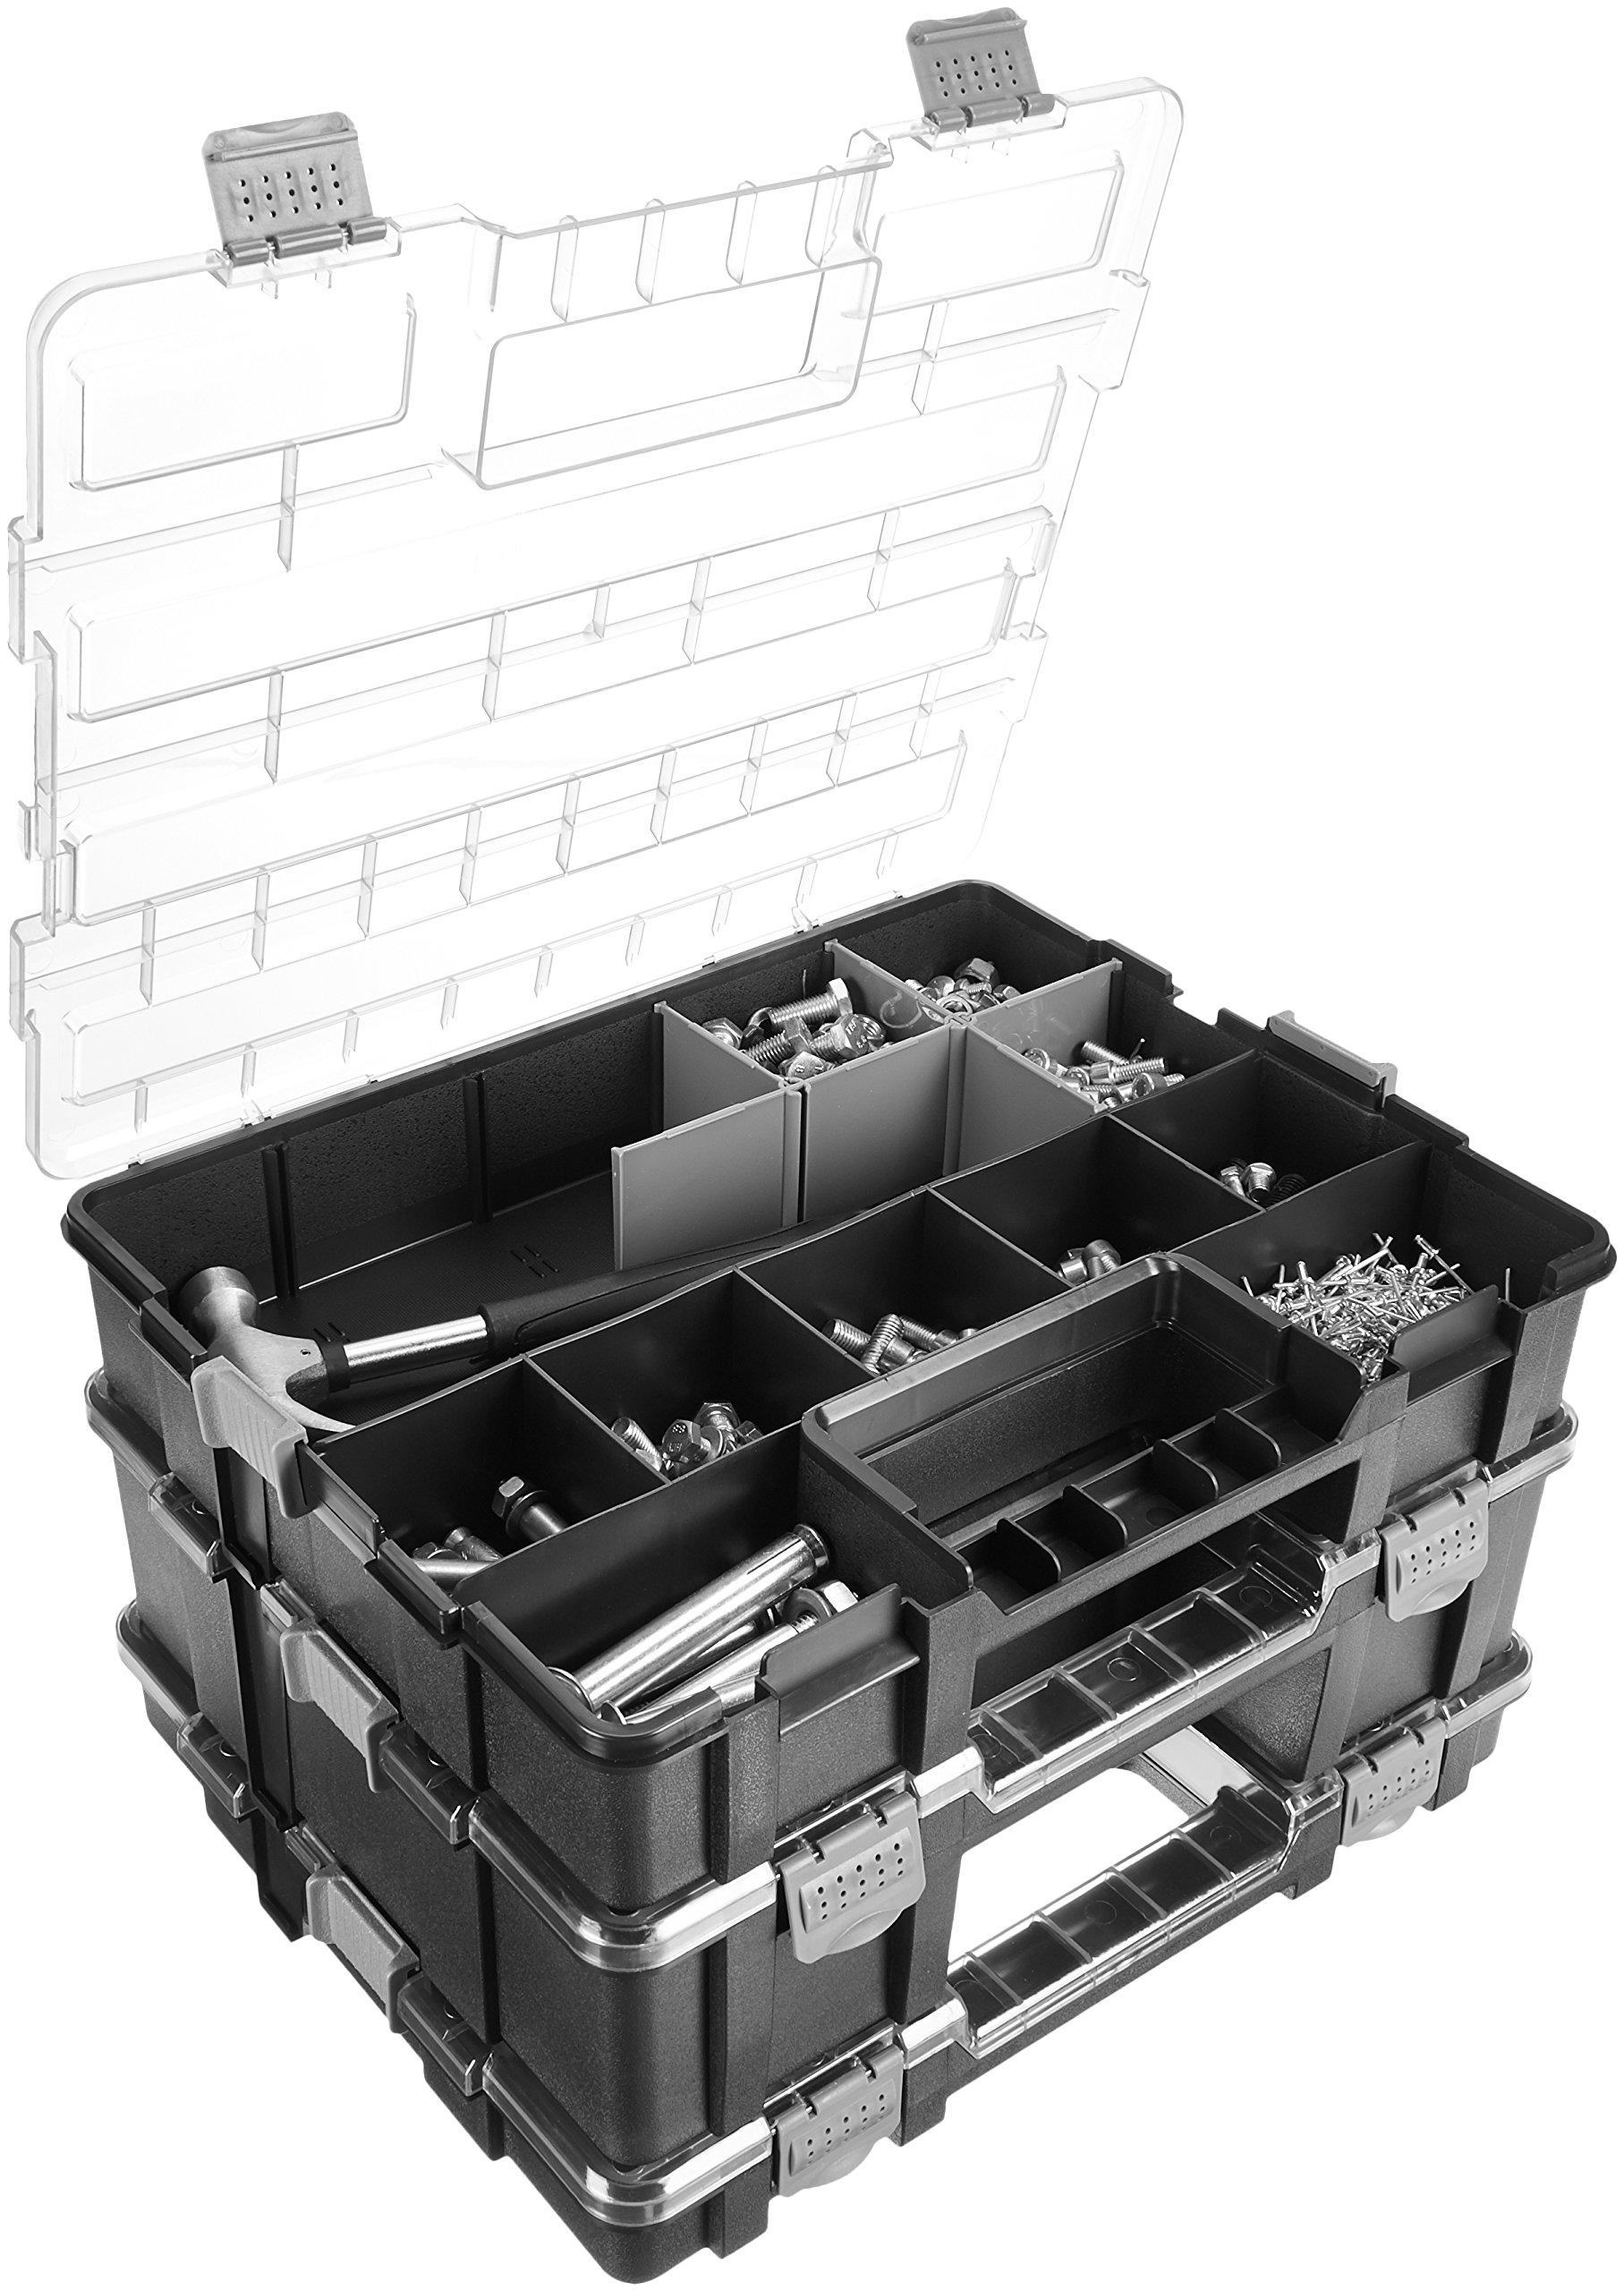 Sortimo T-Boxx STB G 16STK H63 Includes 16 Inset Storage Bin Organizer For Organizing Tools Small Parts Screws Nuts Bolts Hardware Electronic Components